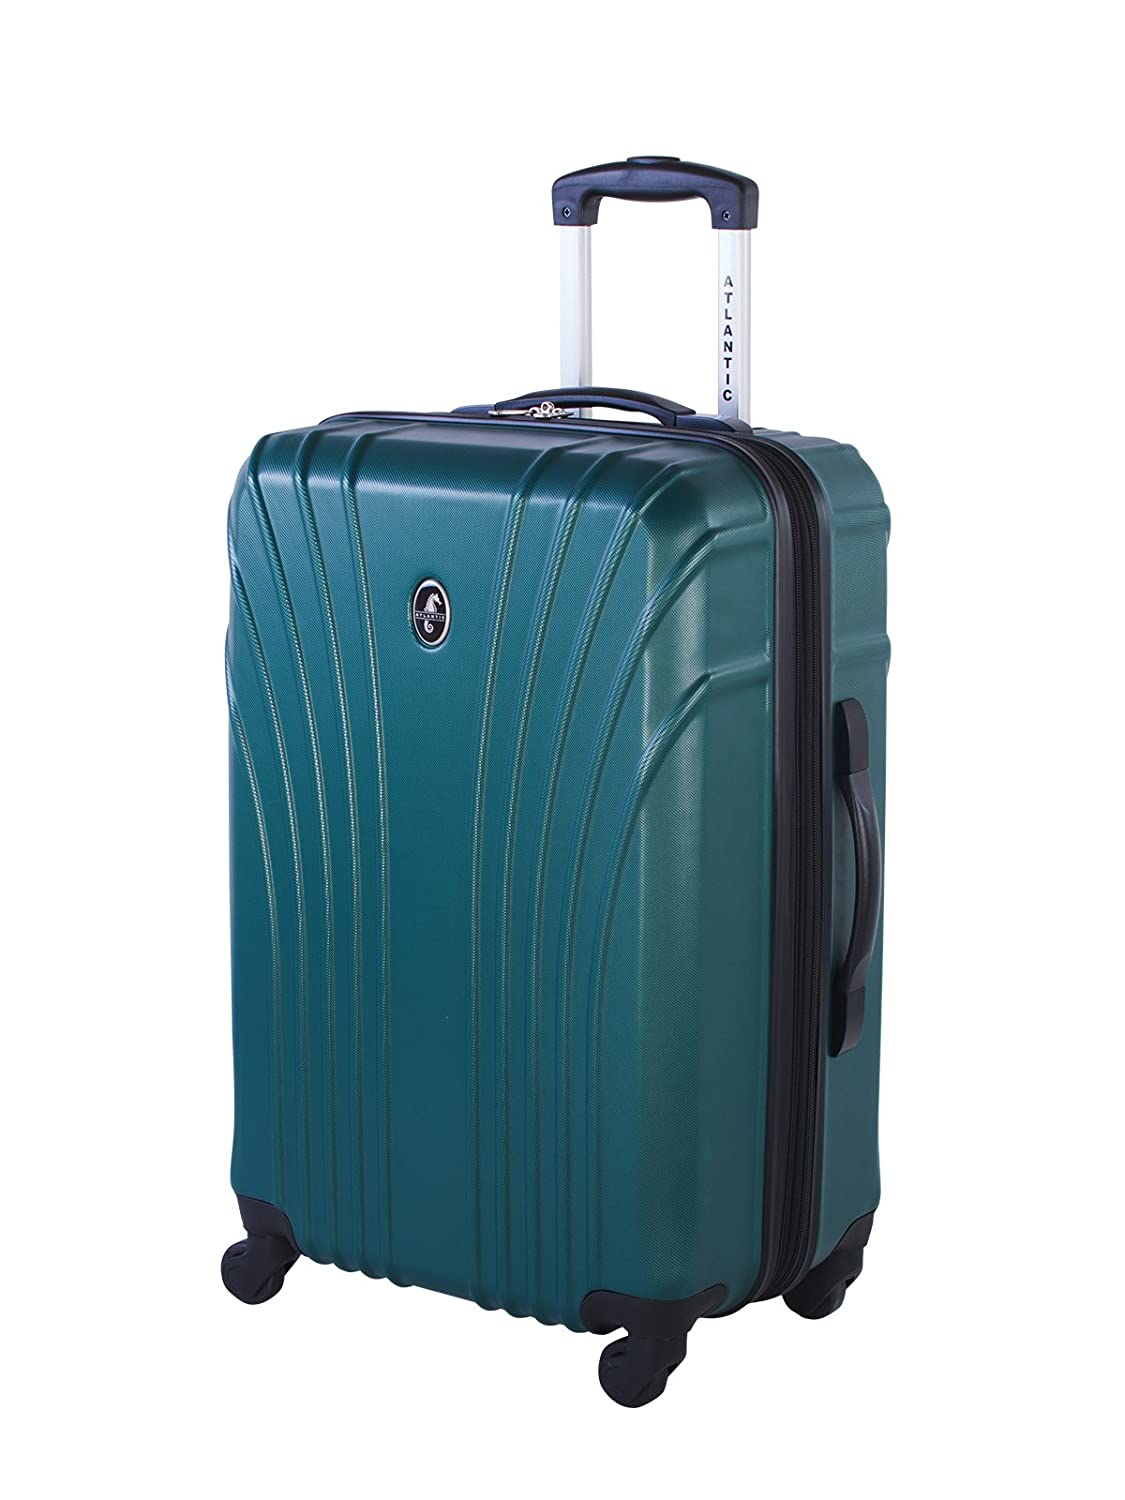 Atlantic Beaumont Hardside Spinner United States Carry-on Luggage 20-Inch, Mauve Holiday Luggage Dropship AL4307010